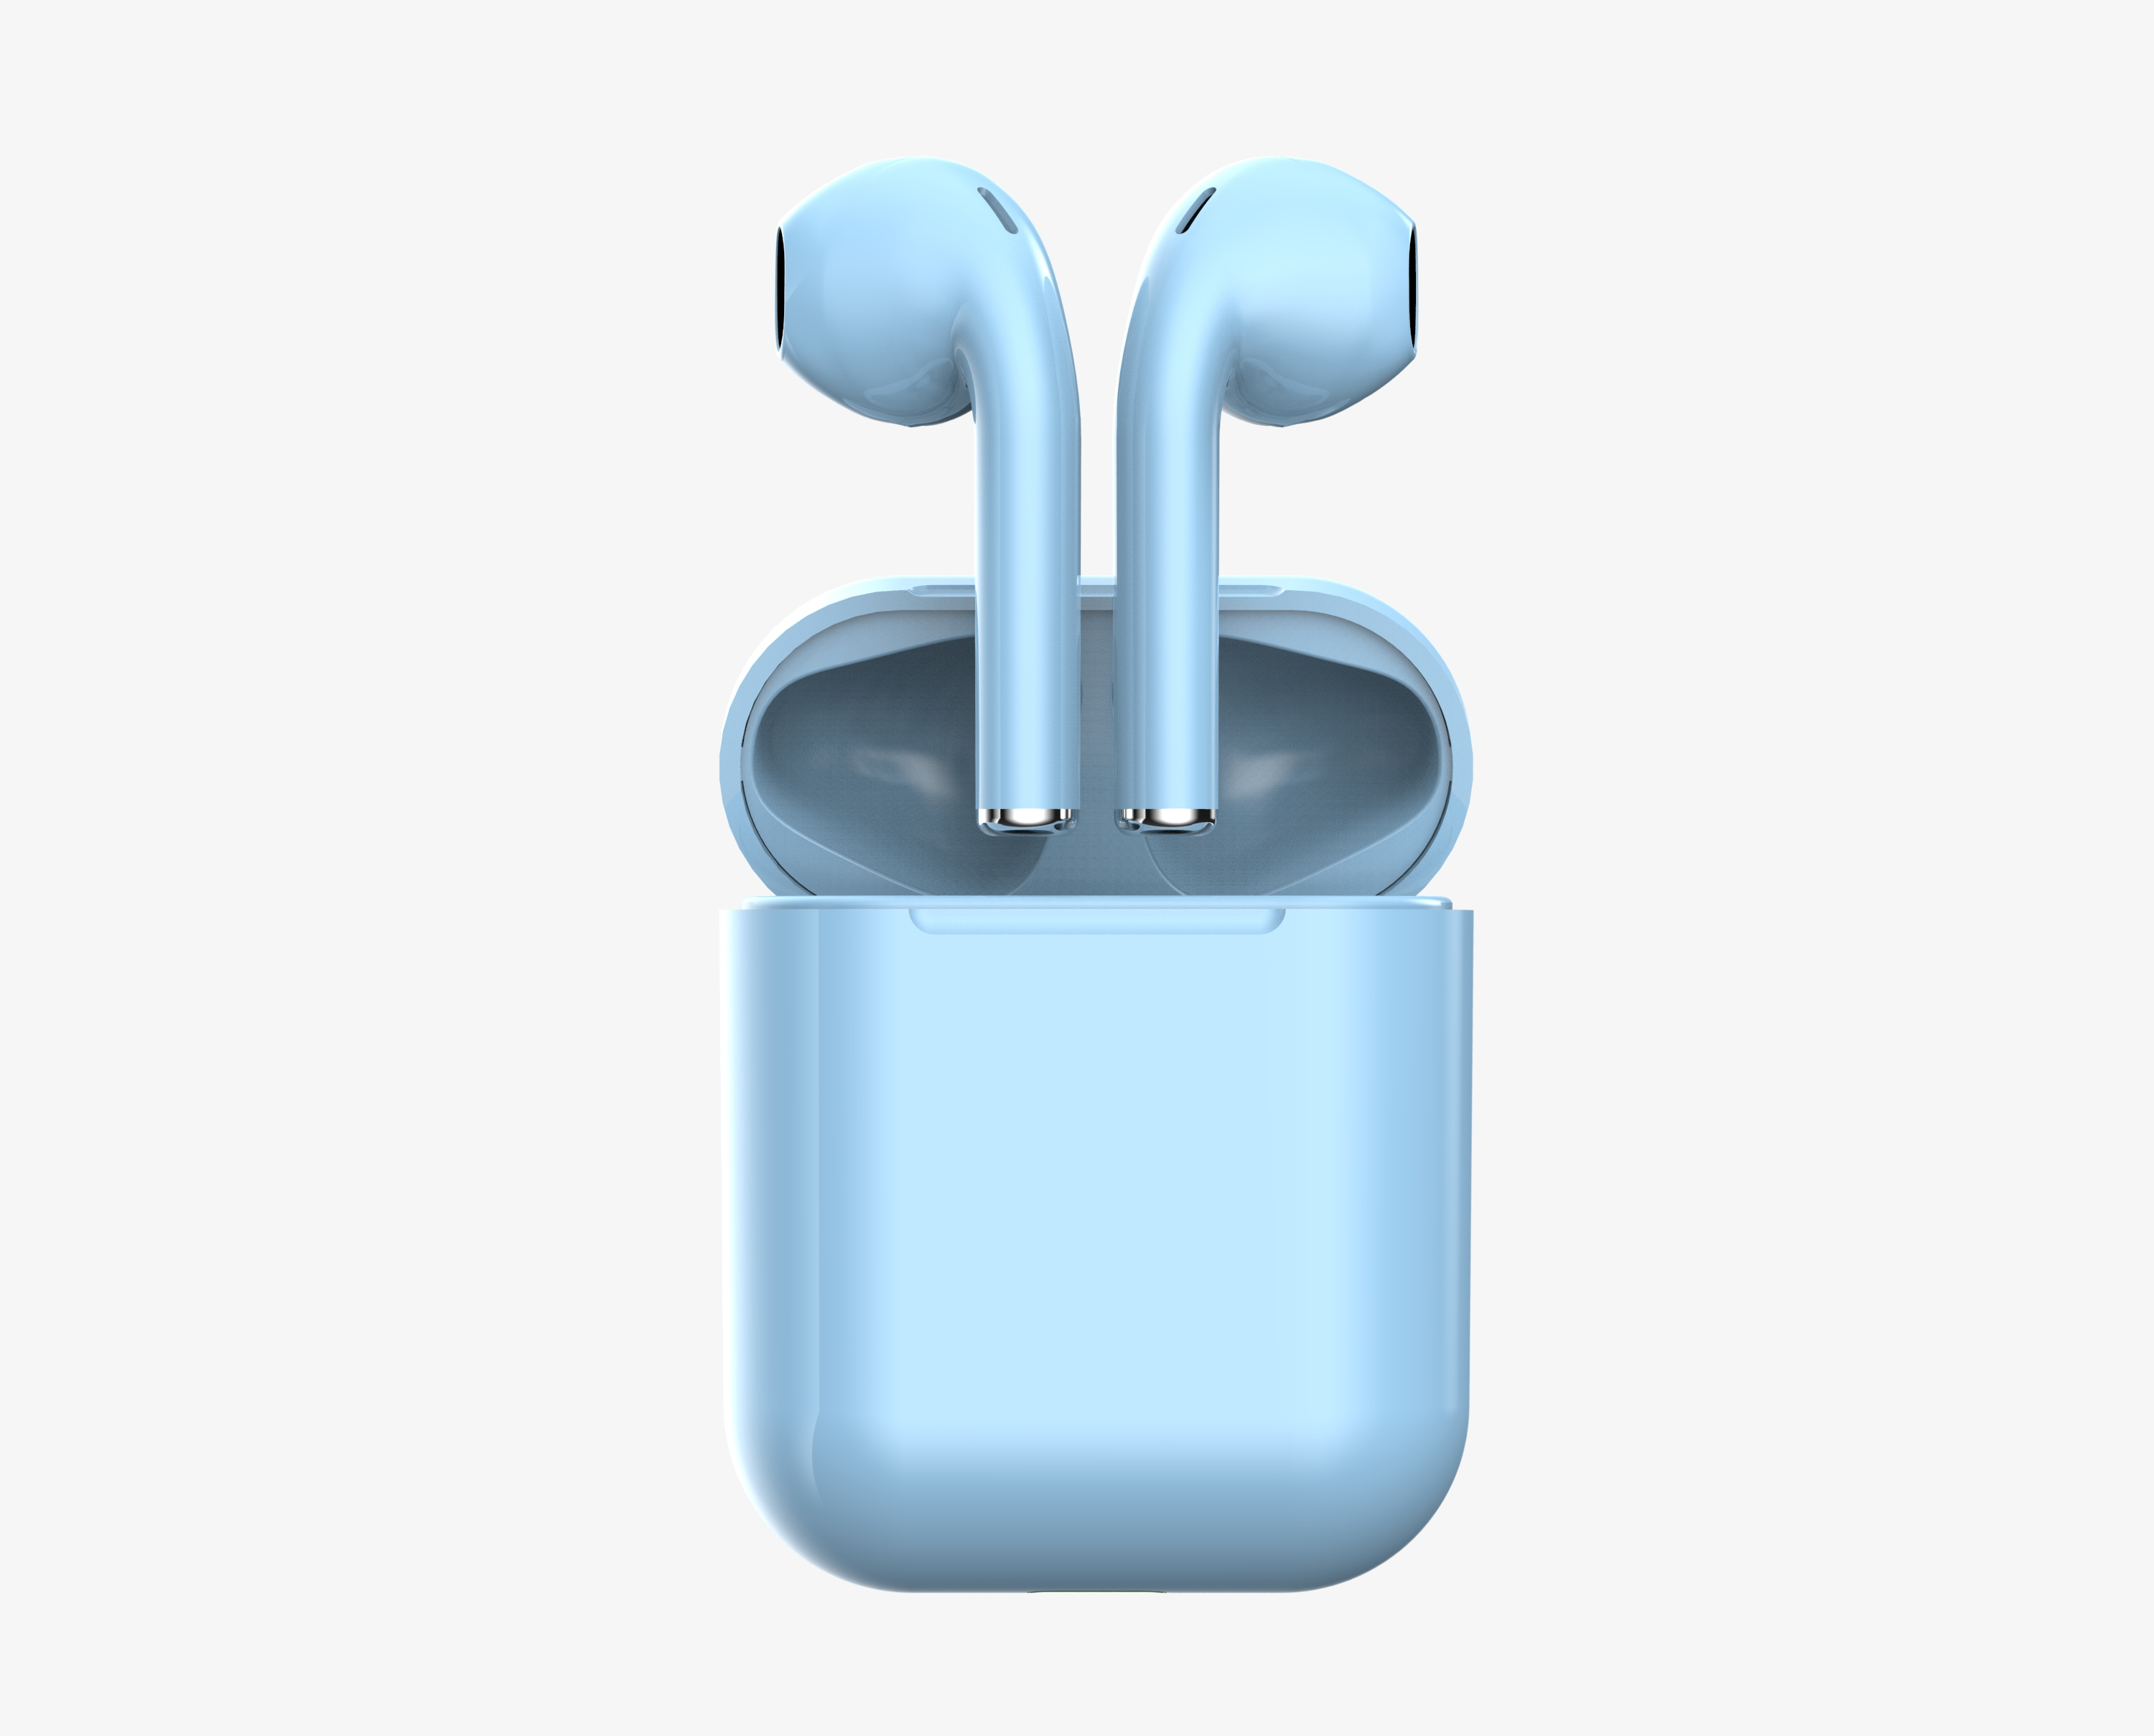 TWS i <strong>10</strong> truely waterproof stereo in-ear wireless earbuds for smart iphones